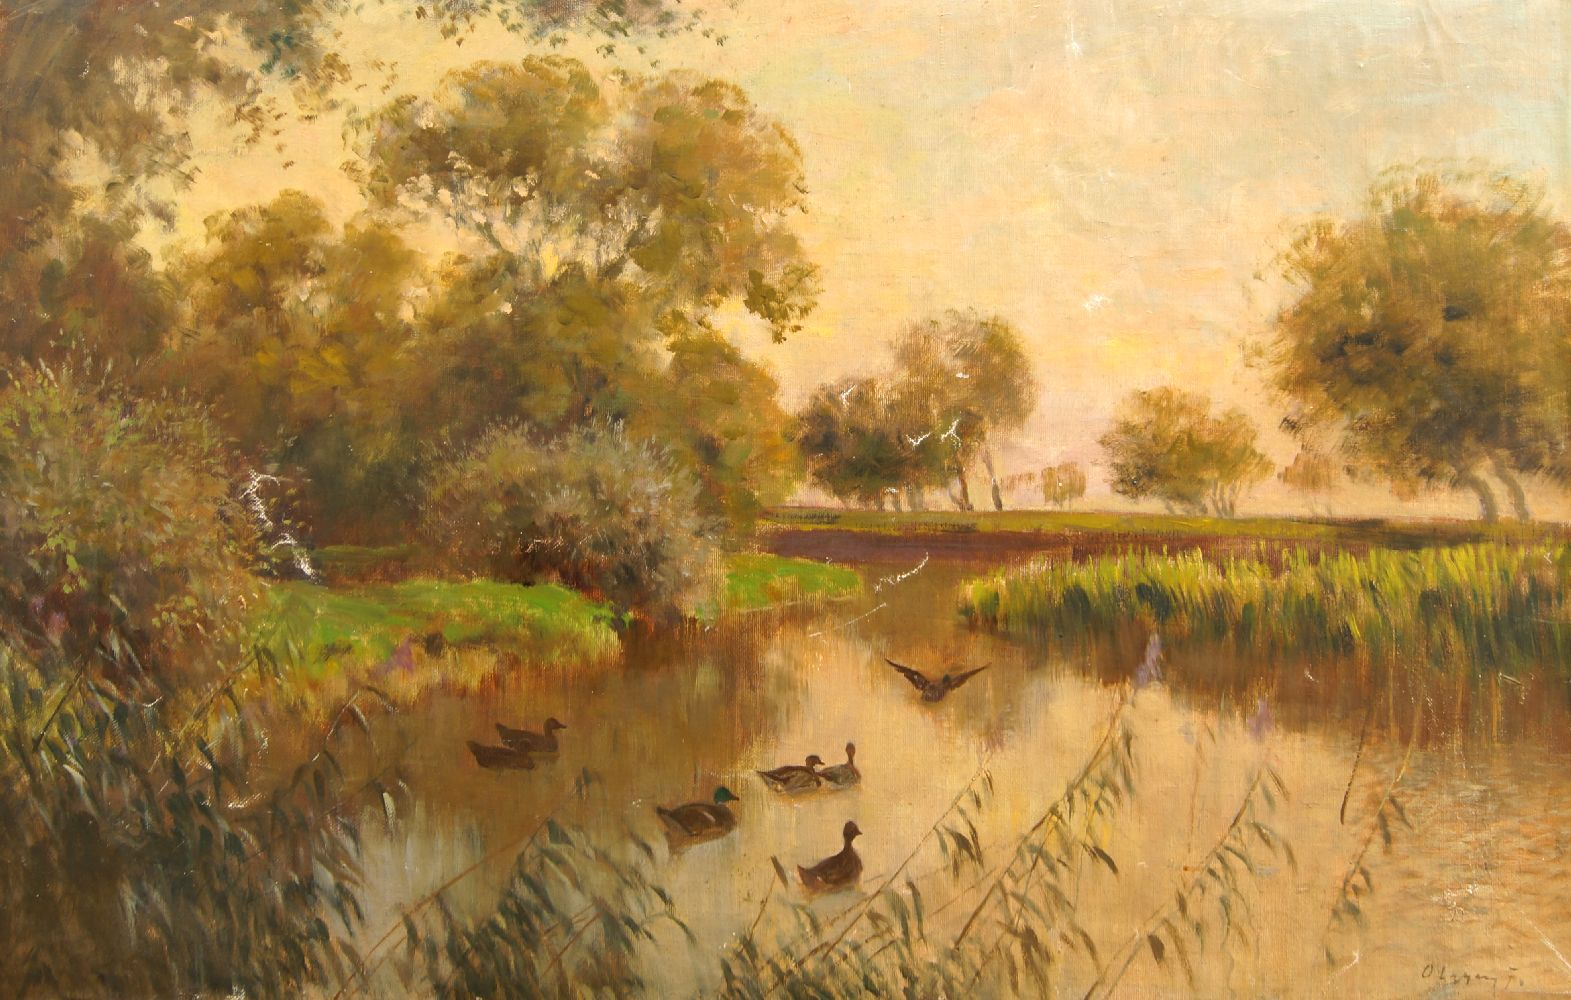 Ferenc Olgyay, Hungarian 1872-1939- Tranquil river landscape with woodland and ducks; oil on canvas,